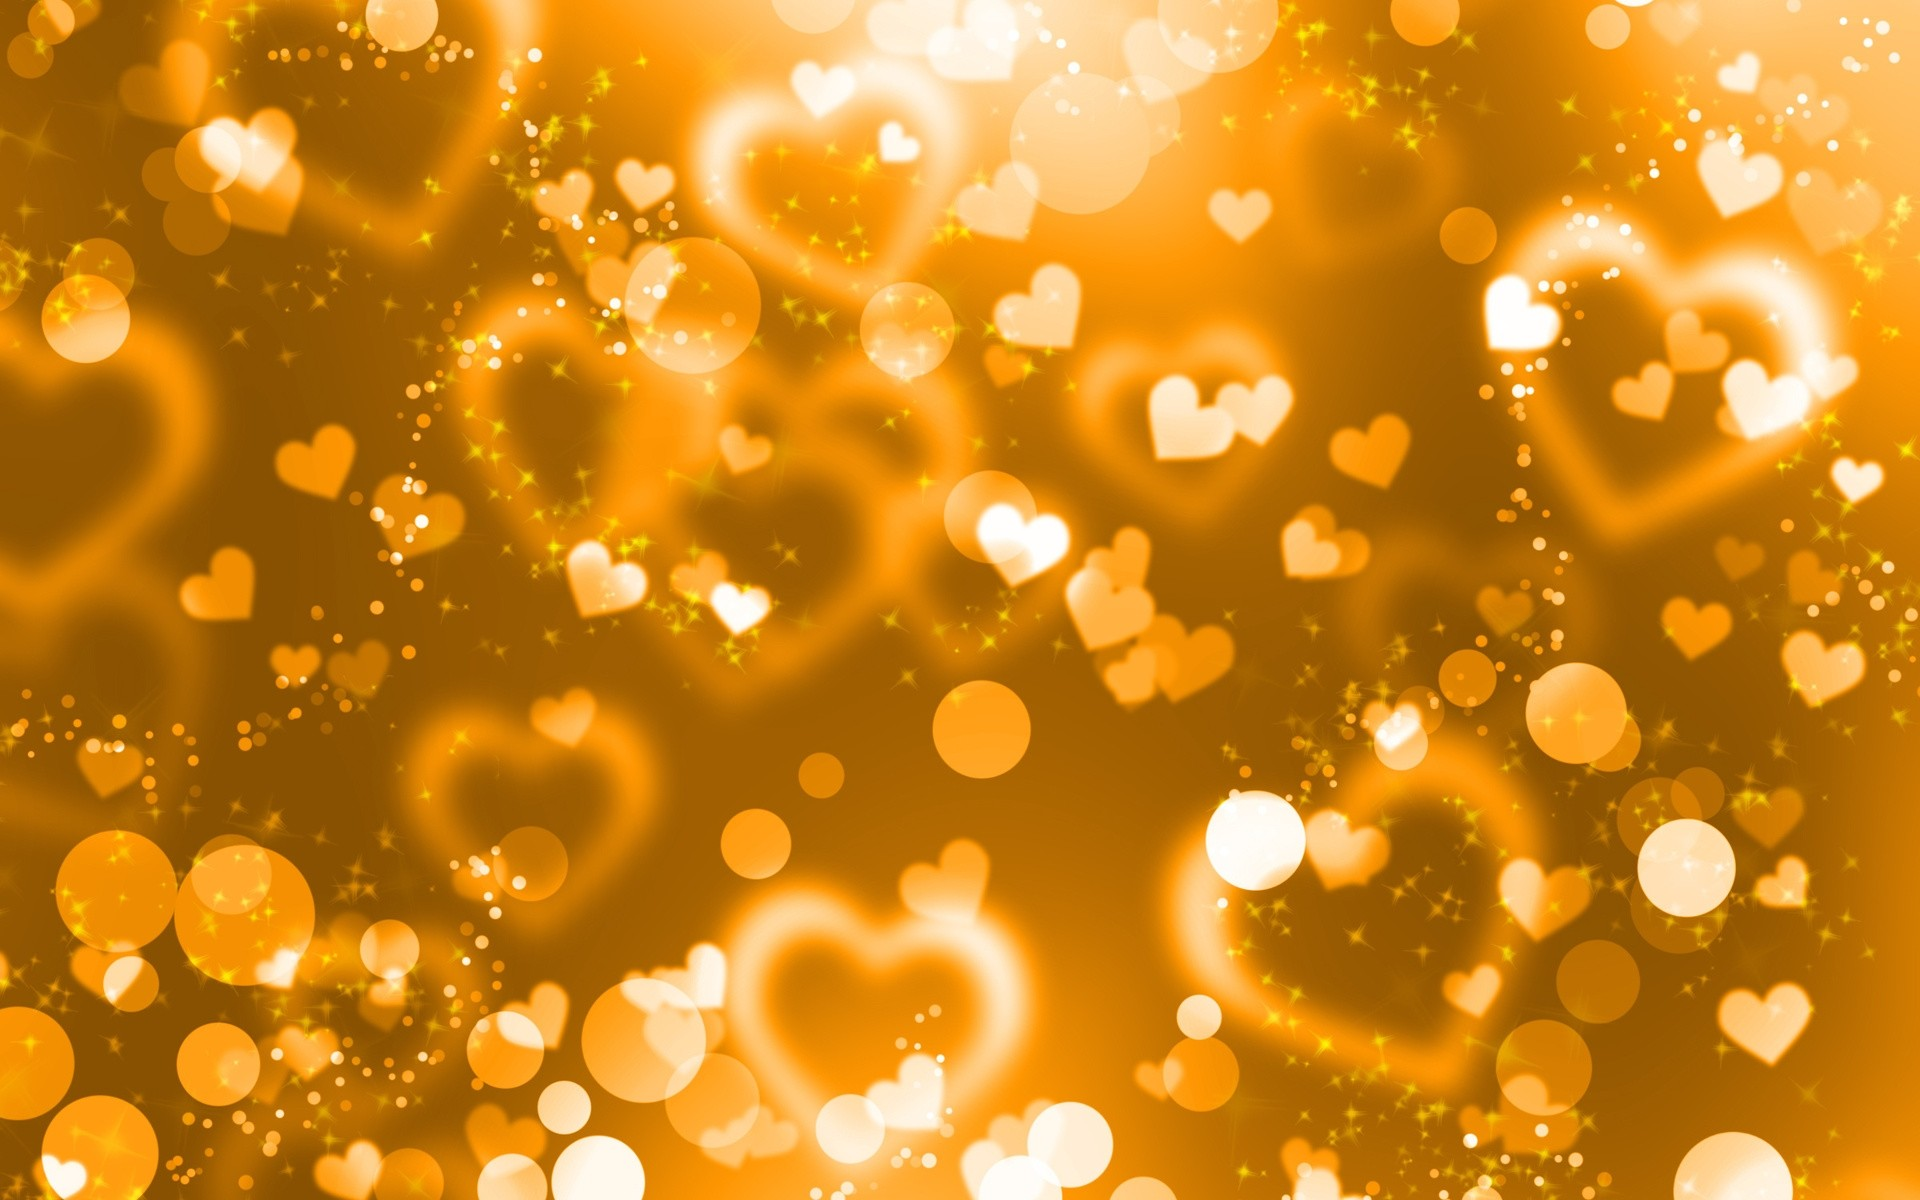 Res: 1920x1200, love gold glitter wallpaper hd hd background wallpapers free amazing cool  smart phone 4k high definition 1920×1200 Wallpaper HD